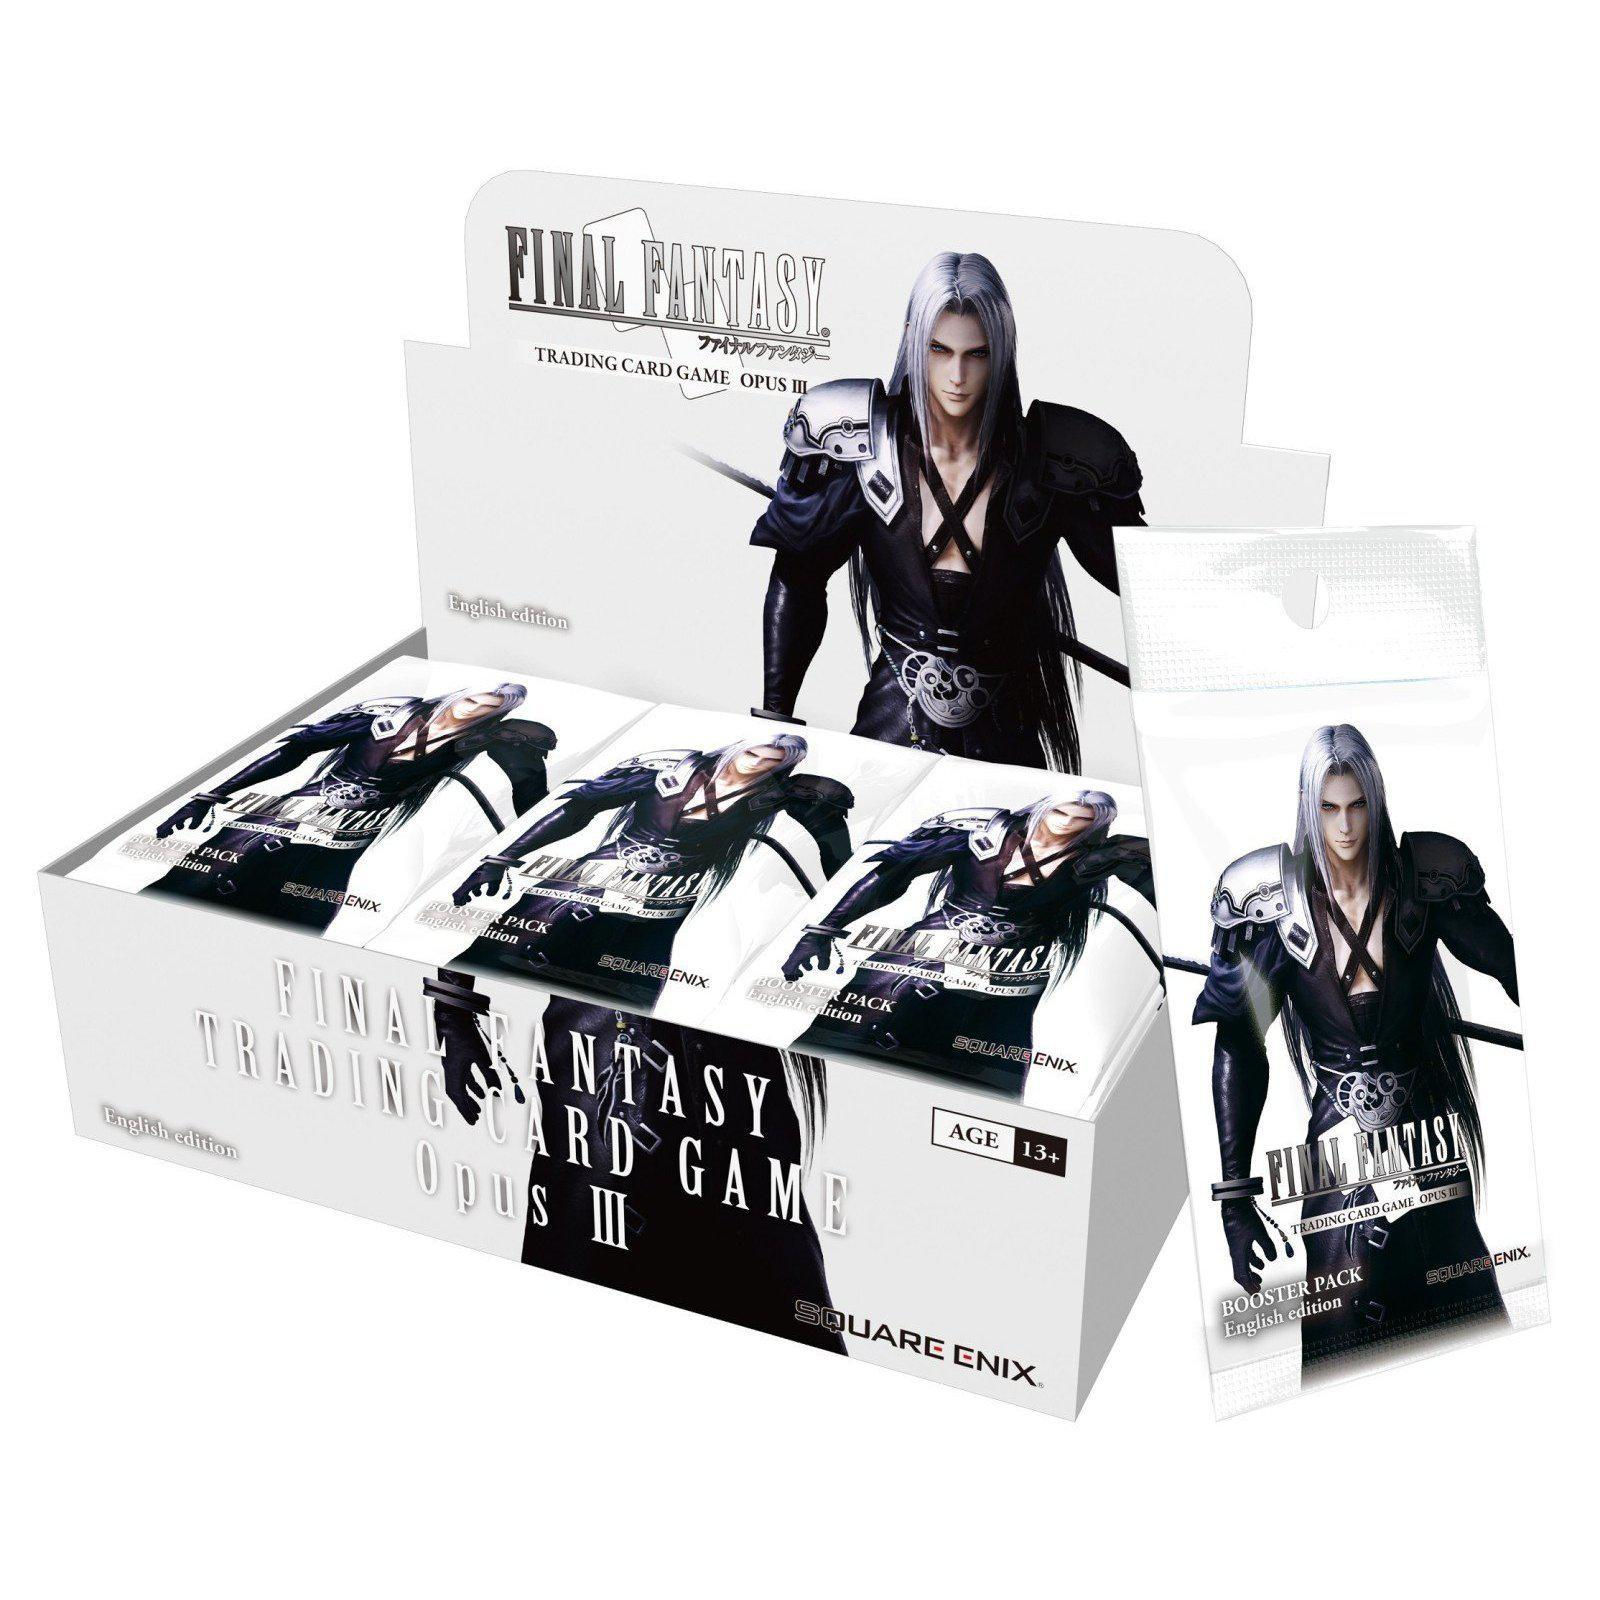 Final Fantasy Trading Card Game Opus III Booster Display